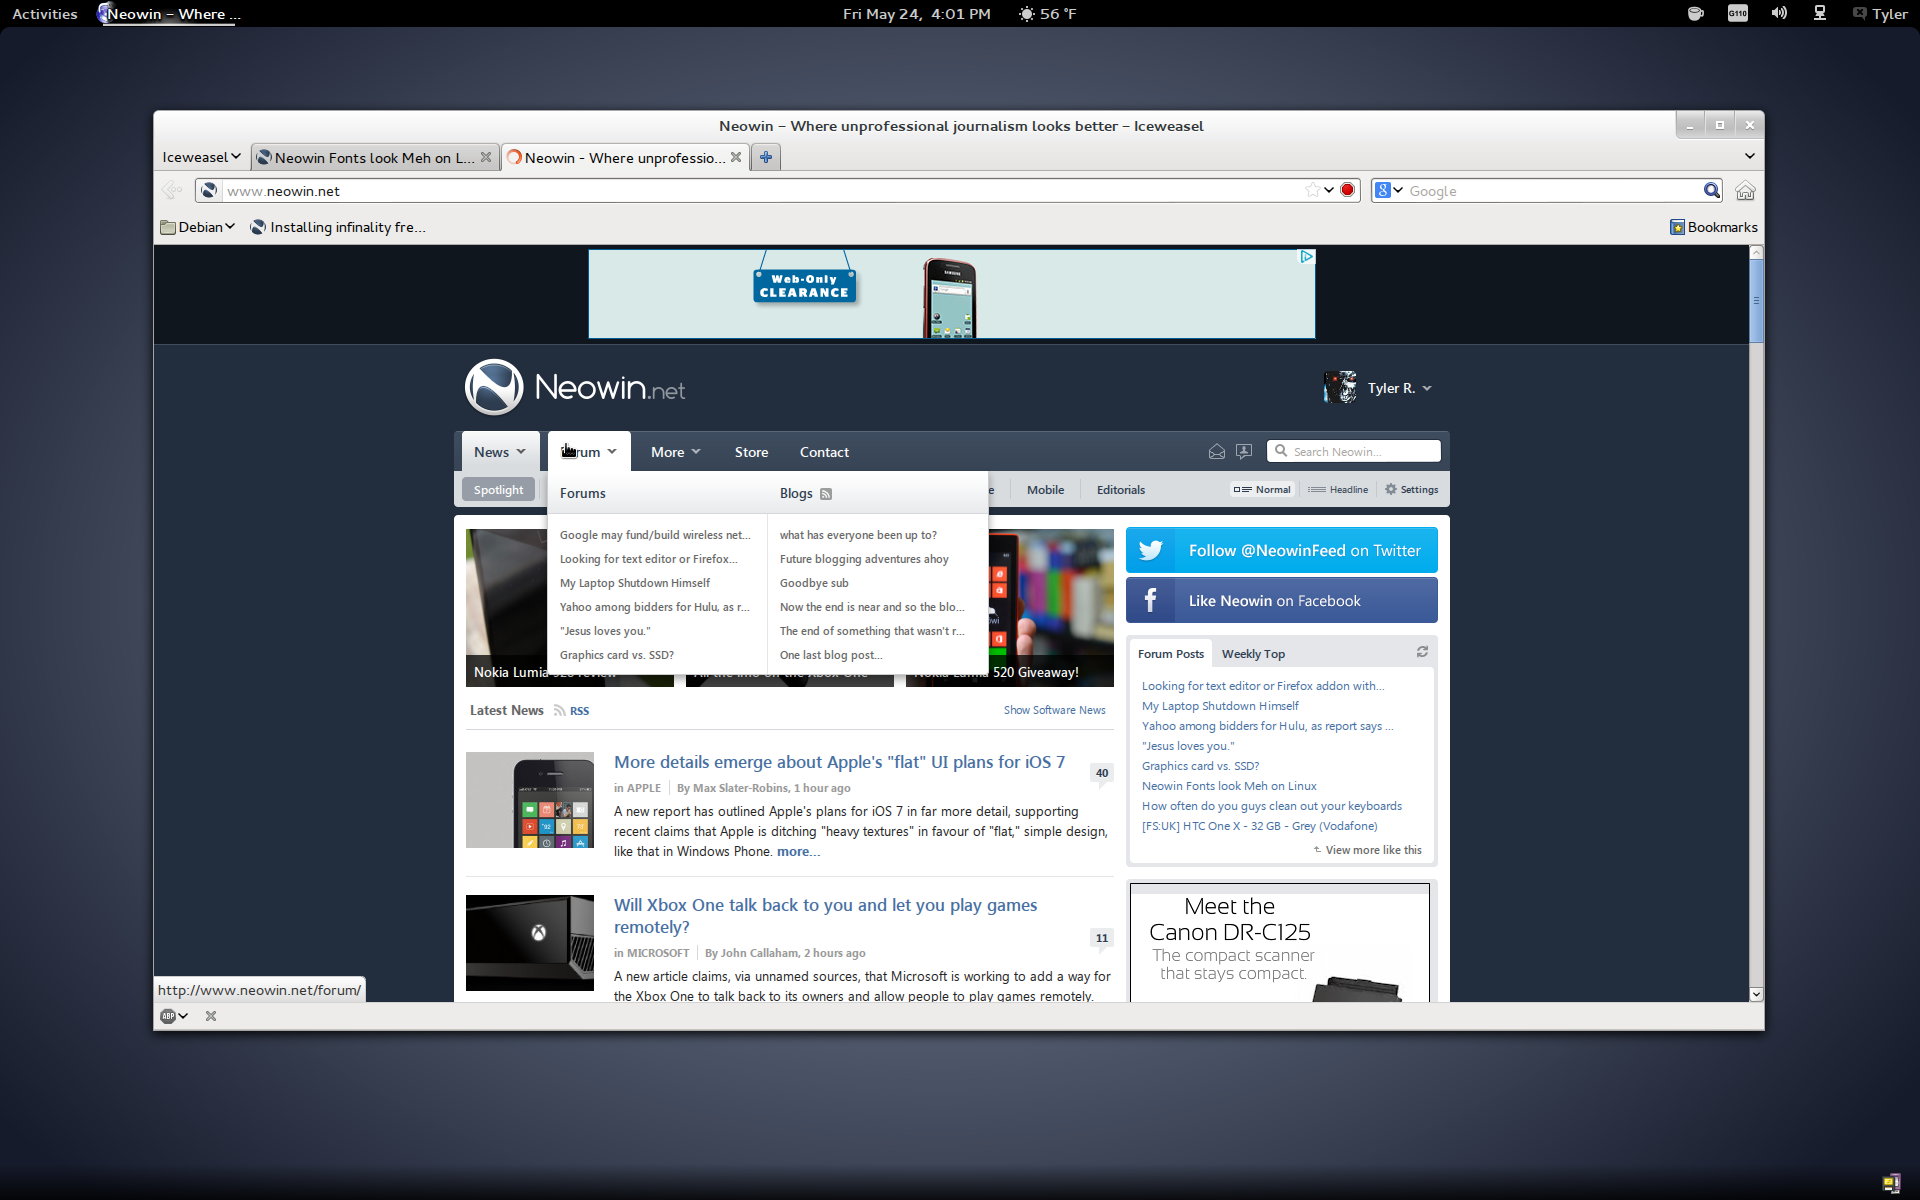 Screenshot from 2013-05-24 16:01:34.png